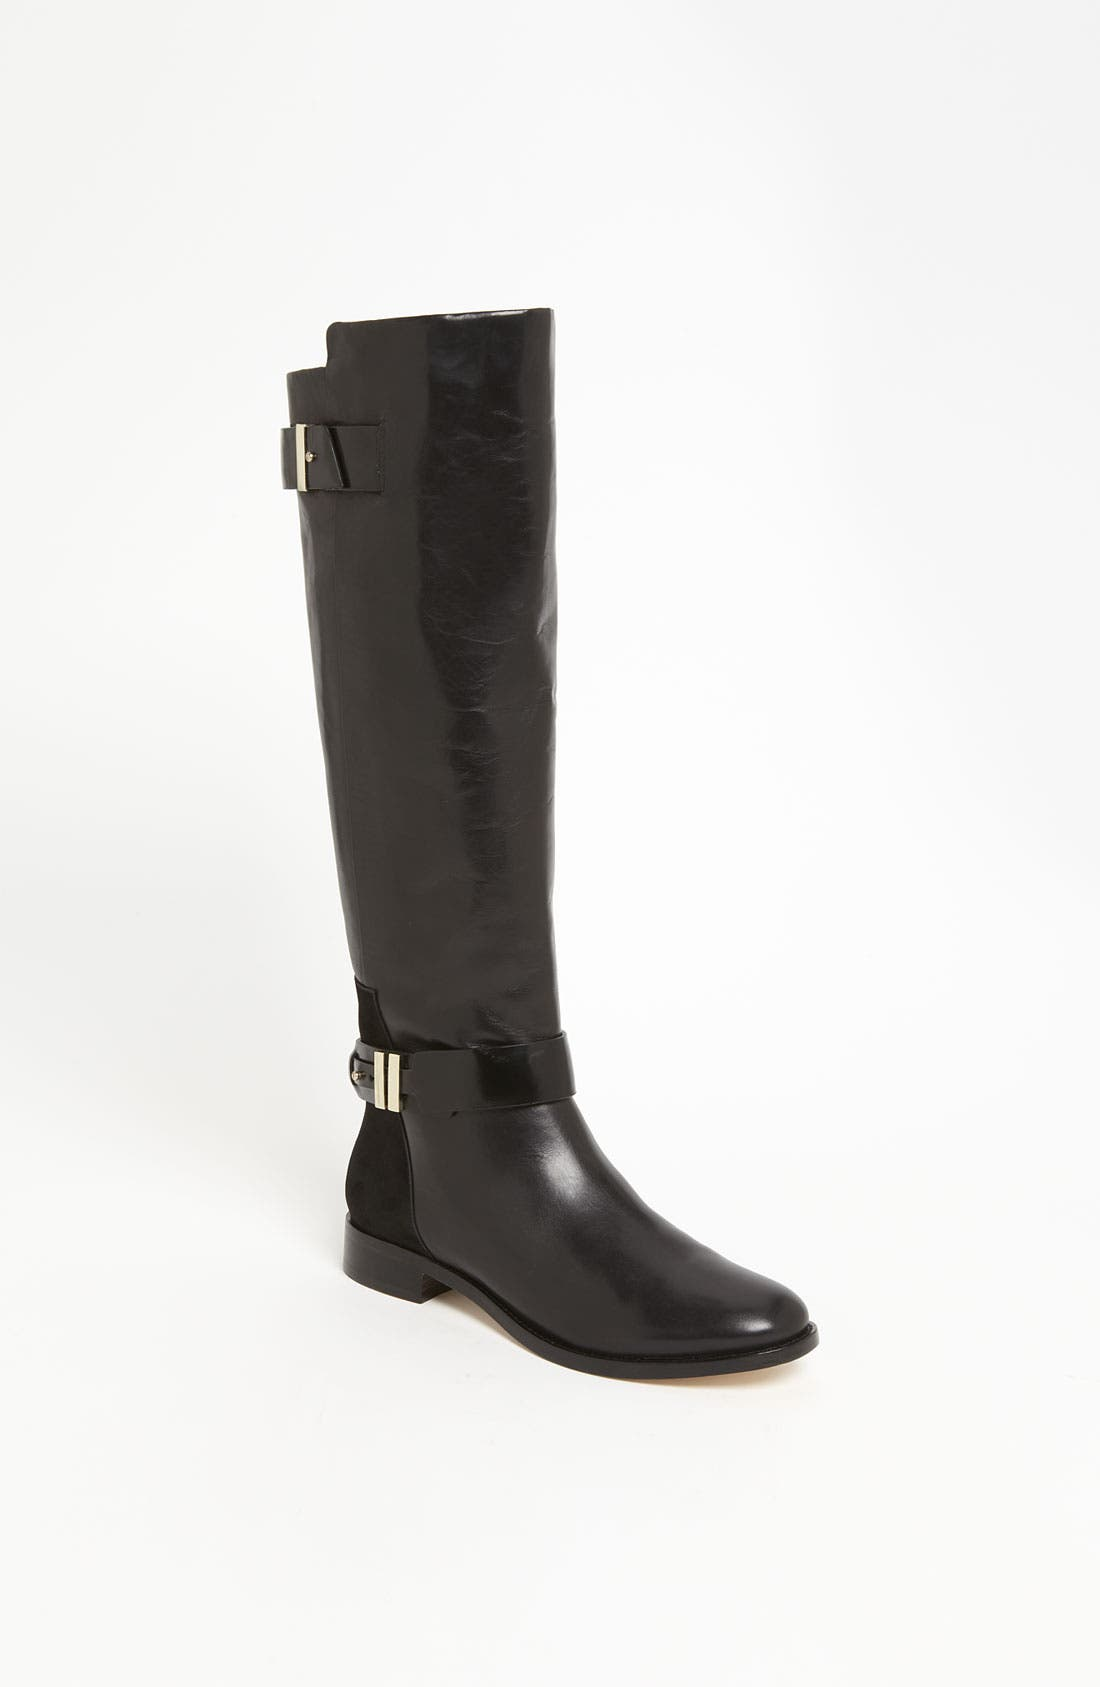 Alternate Image 1 Selected - Rachel Roy 'Delia' Over the Knee Boot